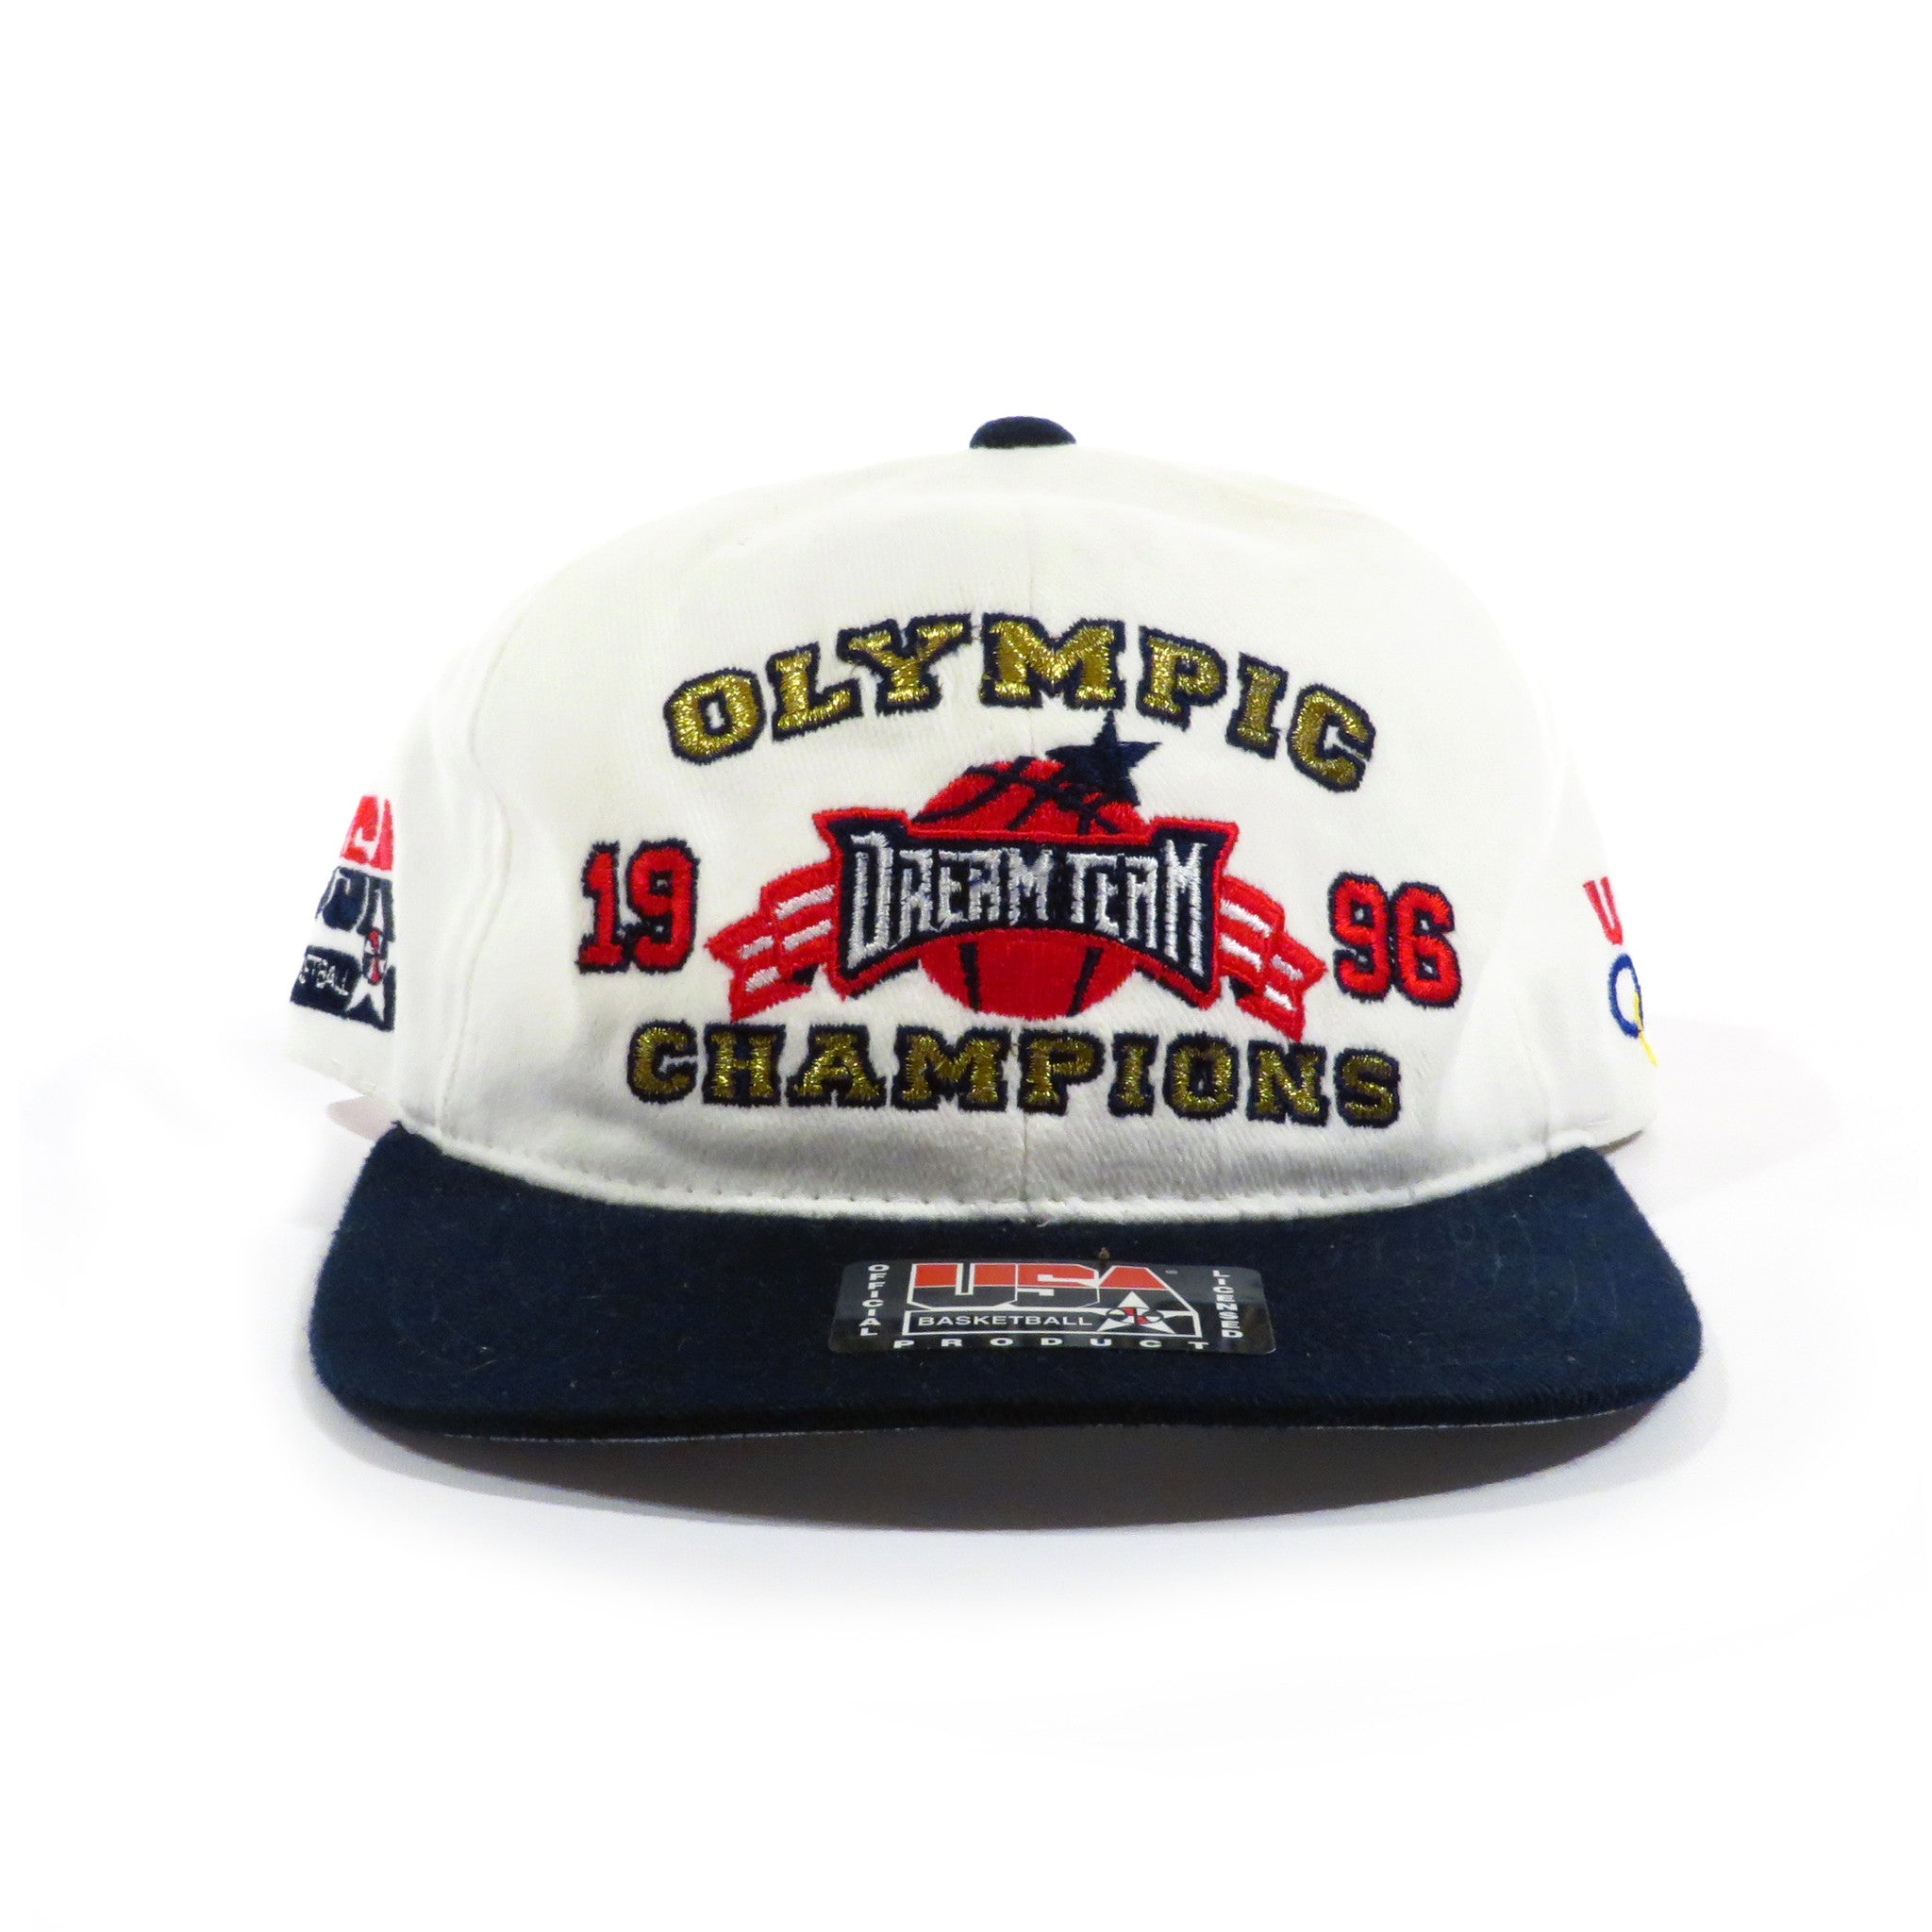 1996 USA Dream Team Starter Snapback Hat